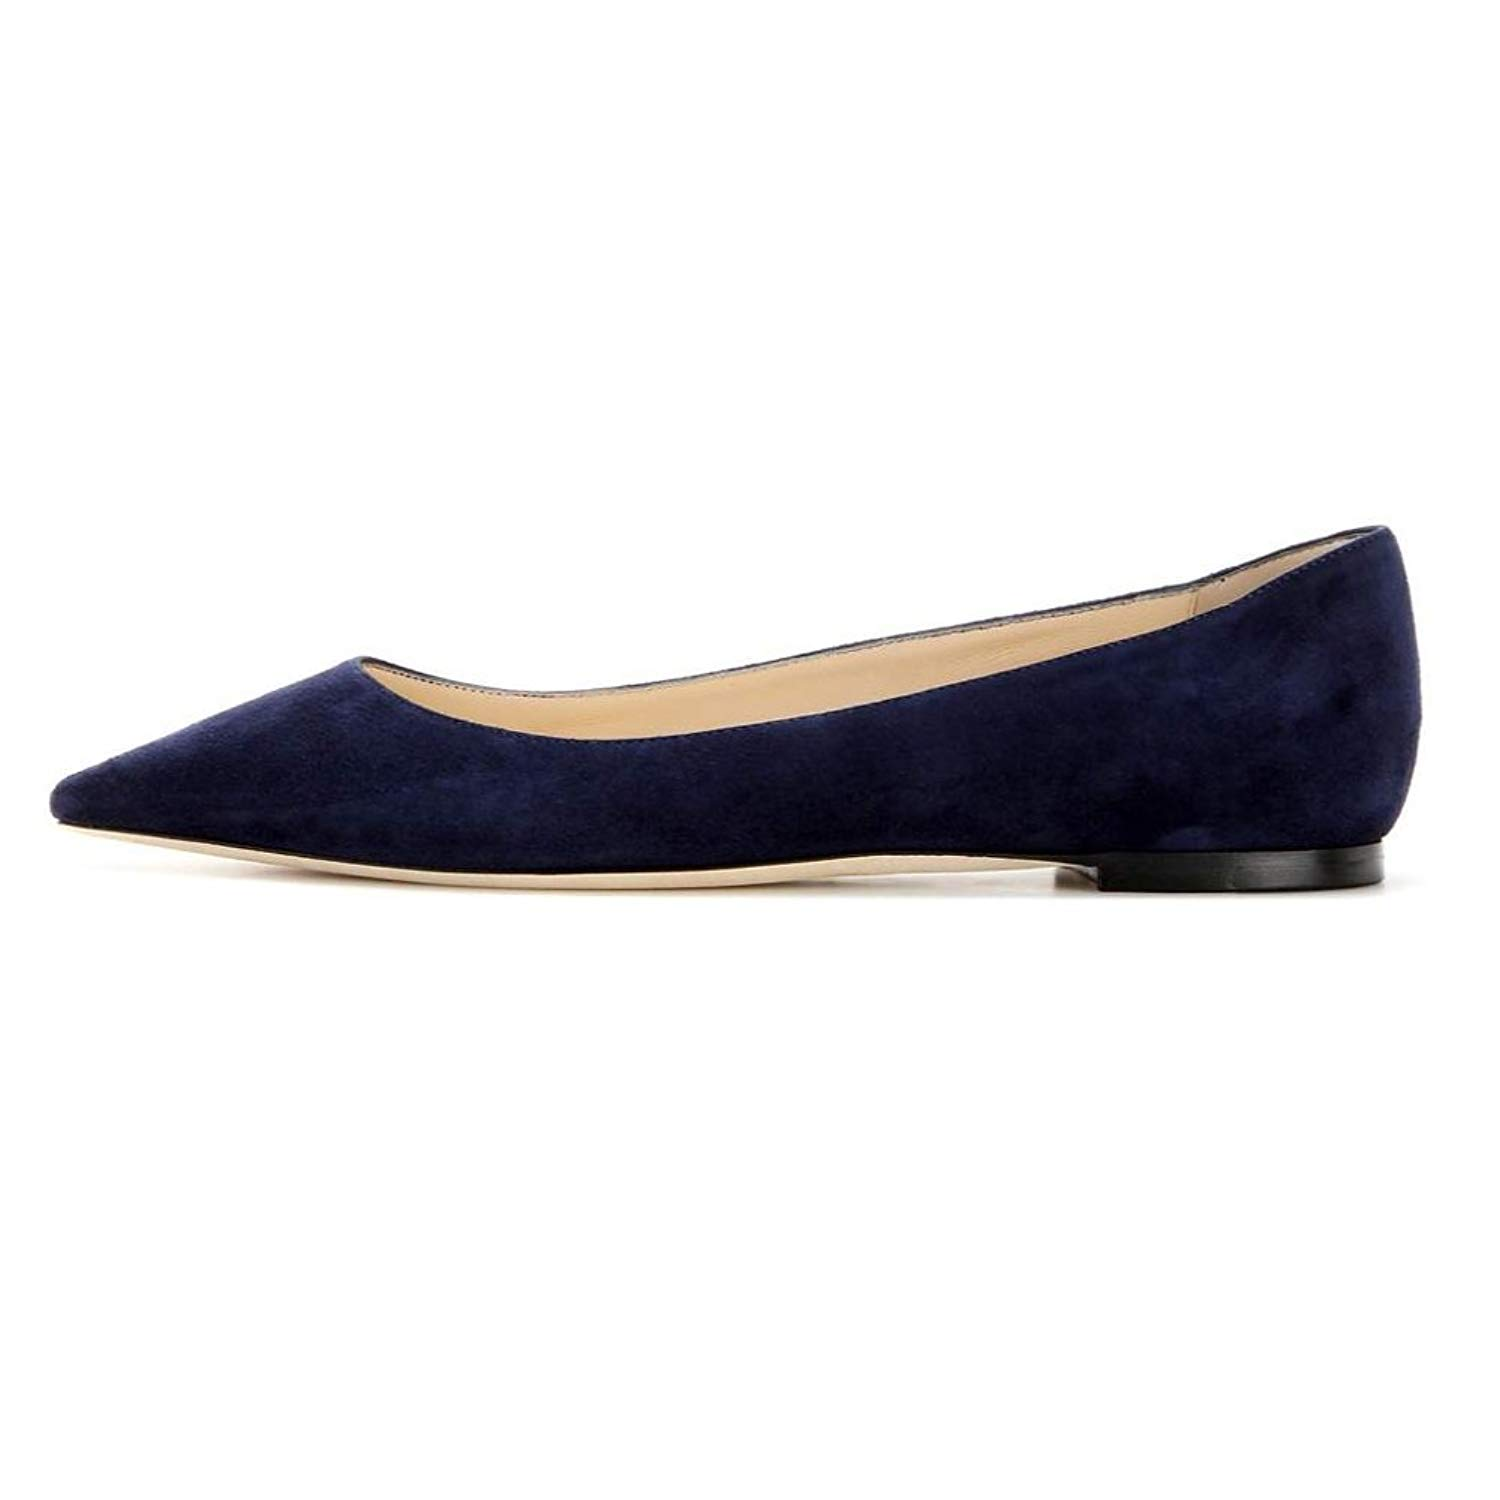 Sammitop Women's Pointed Toe Flats Cut-outs Ballet Shoes Slip-on Casual Shoes